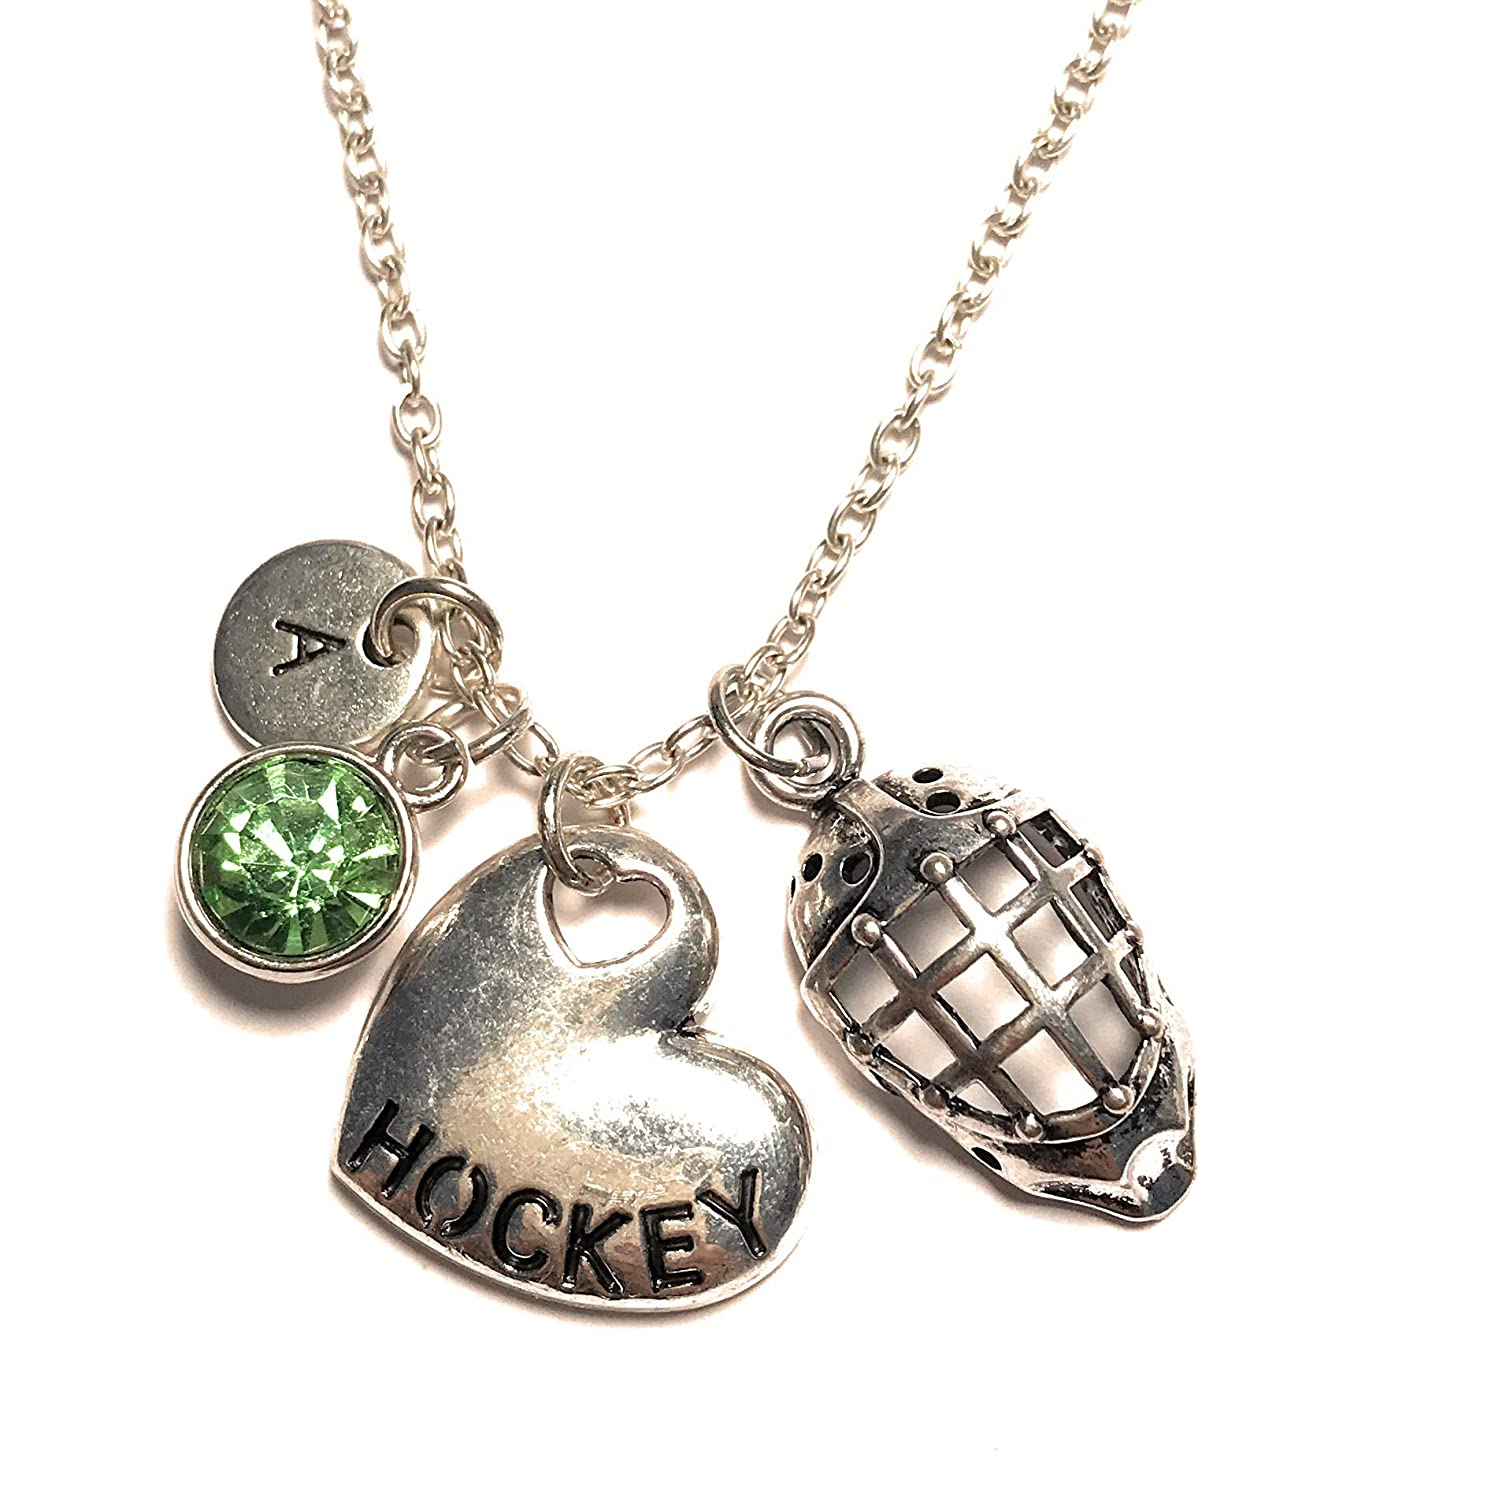 Hockey and Hockey Goalie Helmet Necklace Initial Letter Birthstone Silver Charm Pendant Customized Jewelry Gift